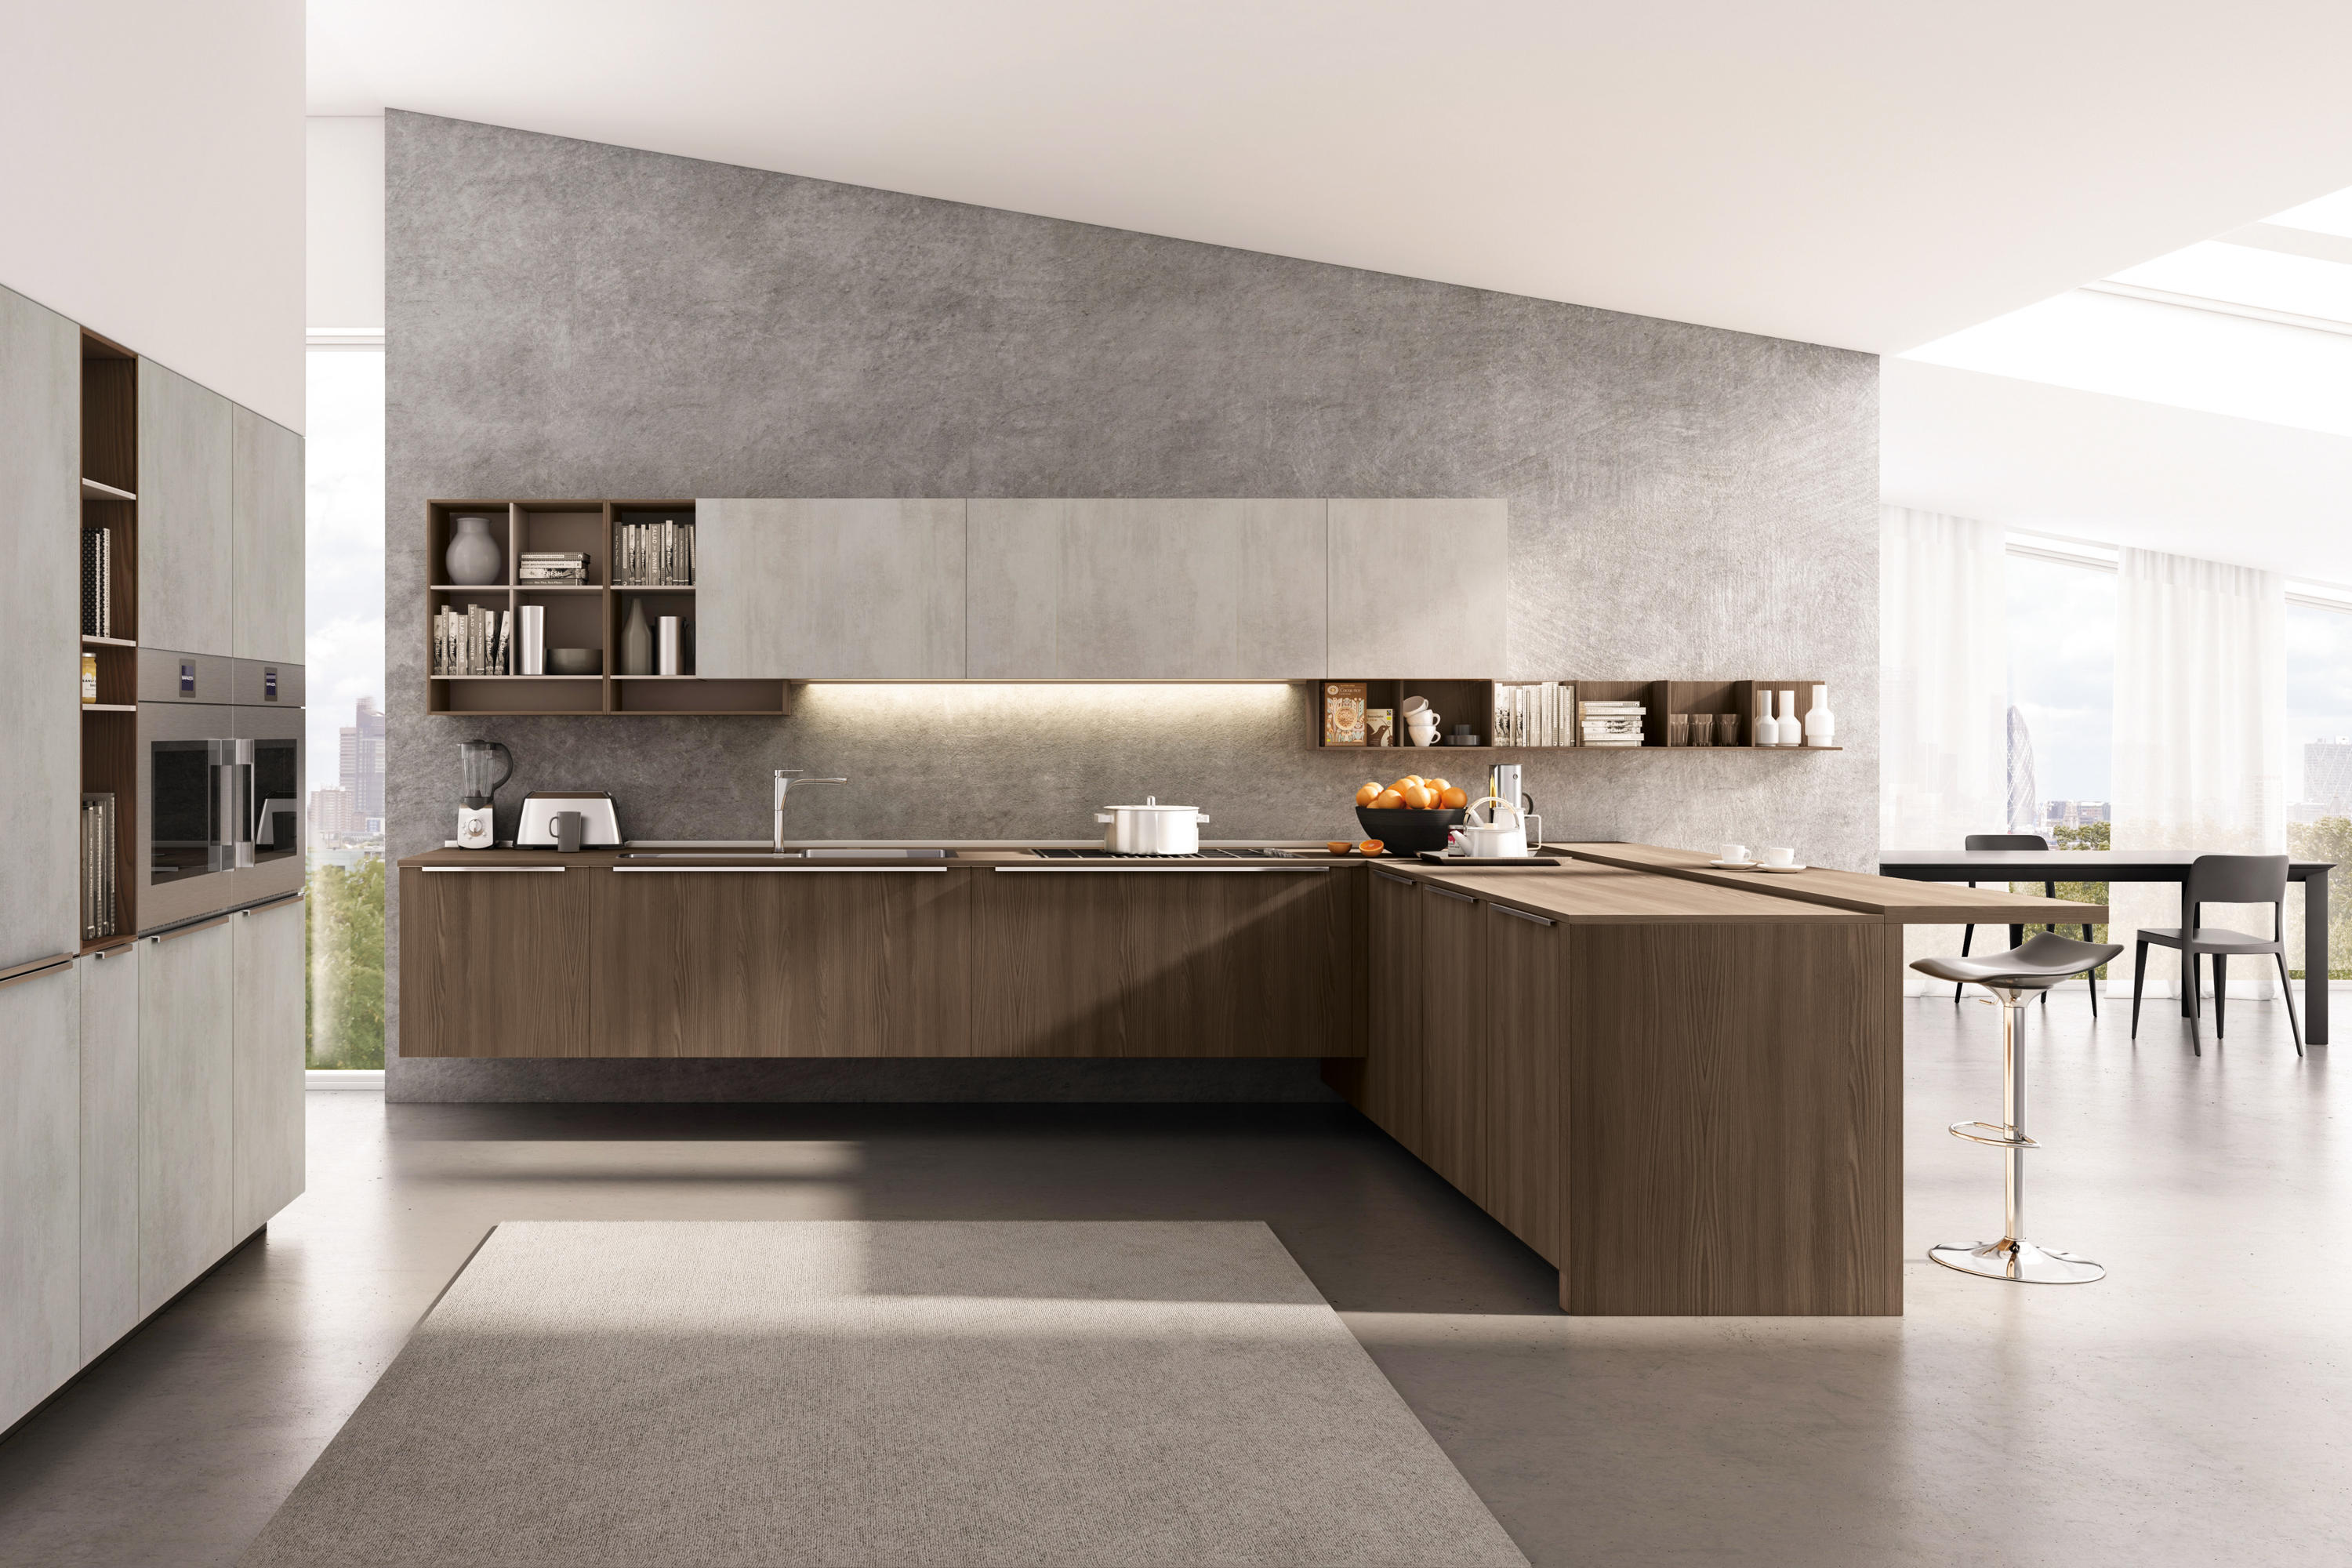 Lain multisystem fitted kitchens from euromobil architonic Modern kitchen design magazine